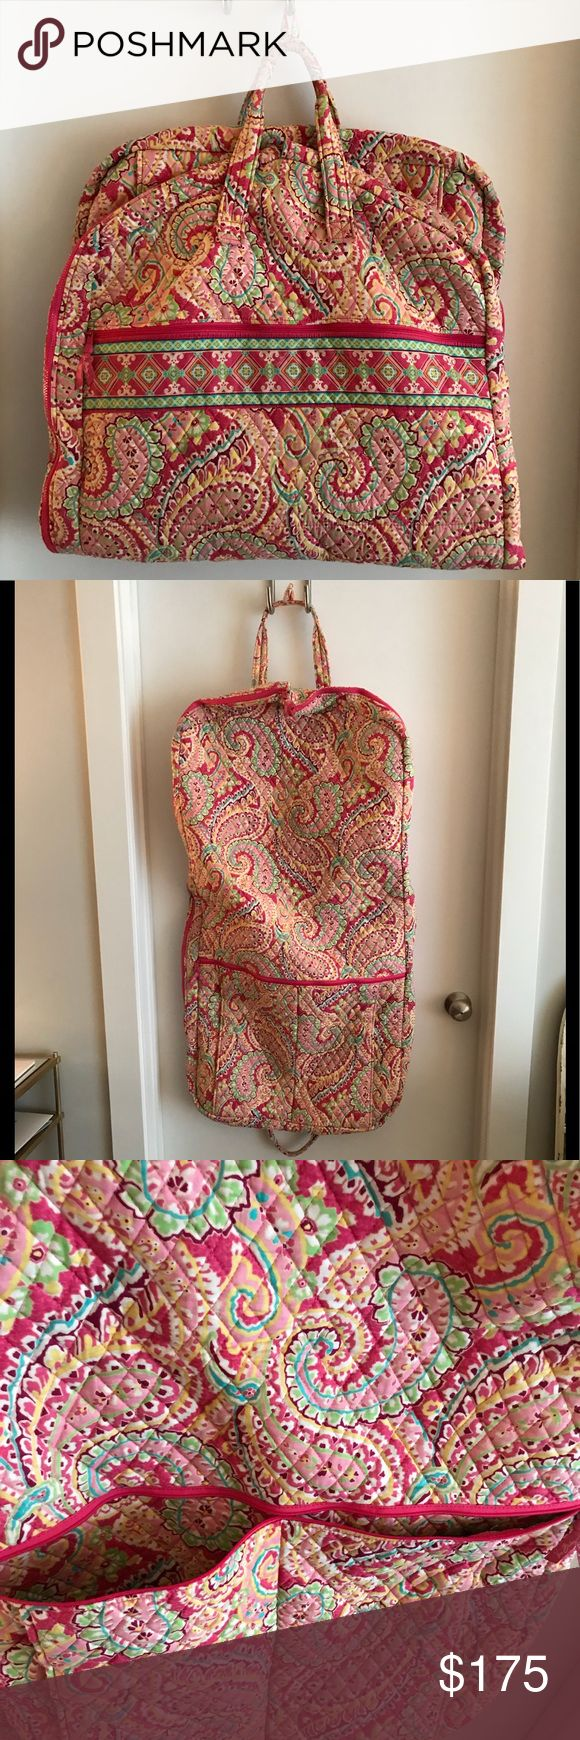 Vera Bradley garment bag Vera Bradley garment bag in a pink print.  Has 3 additional compartments, spacious main compartment can hold multiple garments, and folds to carry with handles or hang.excellent condition! Vera Bradley Bags Travel Bags